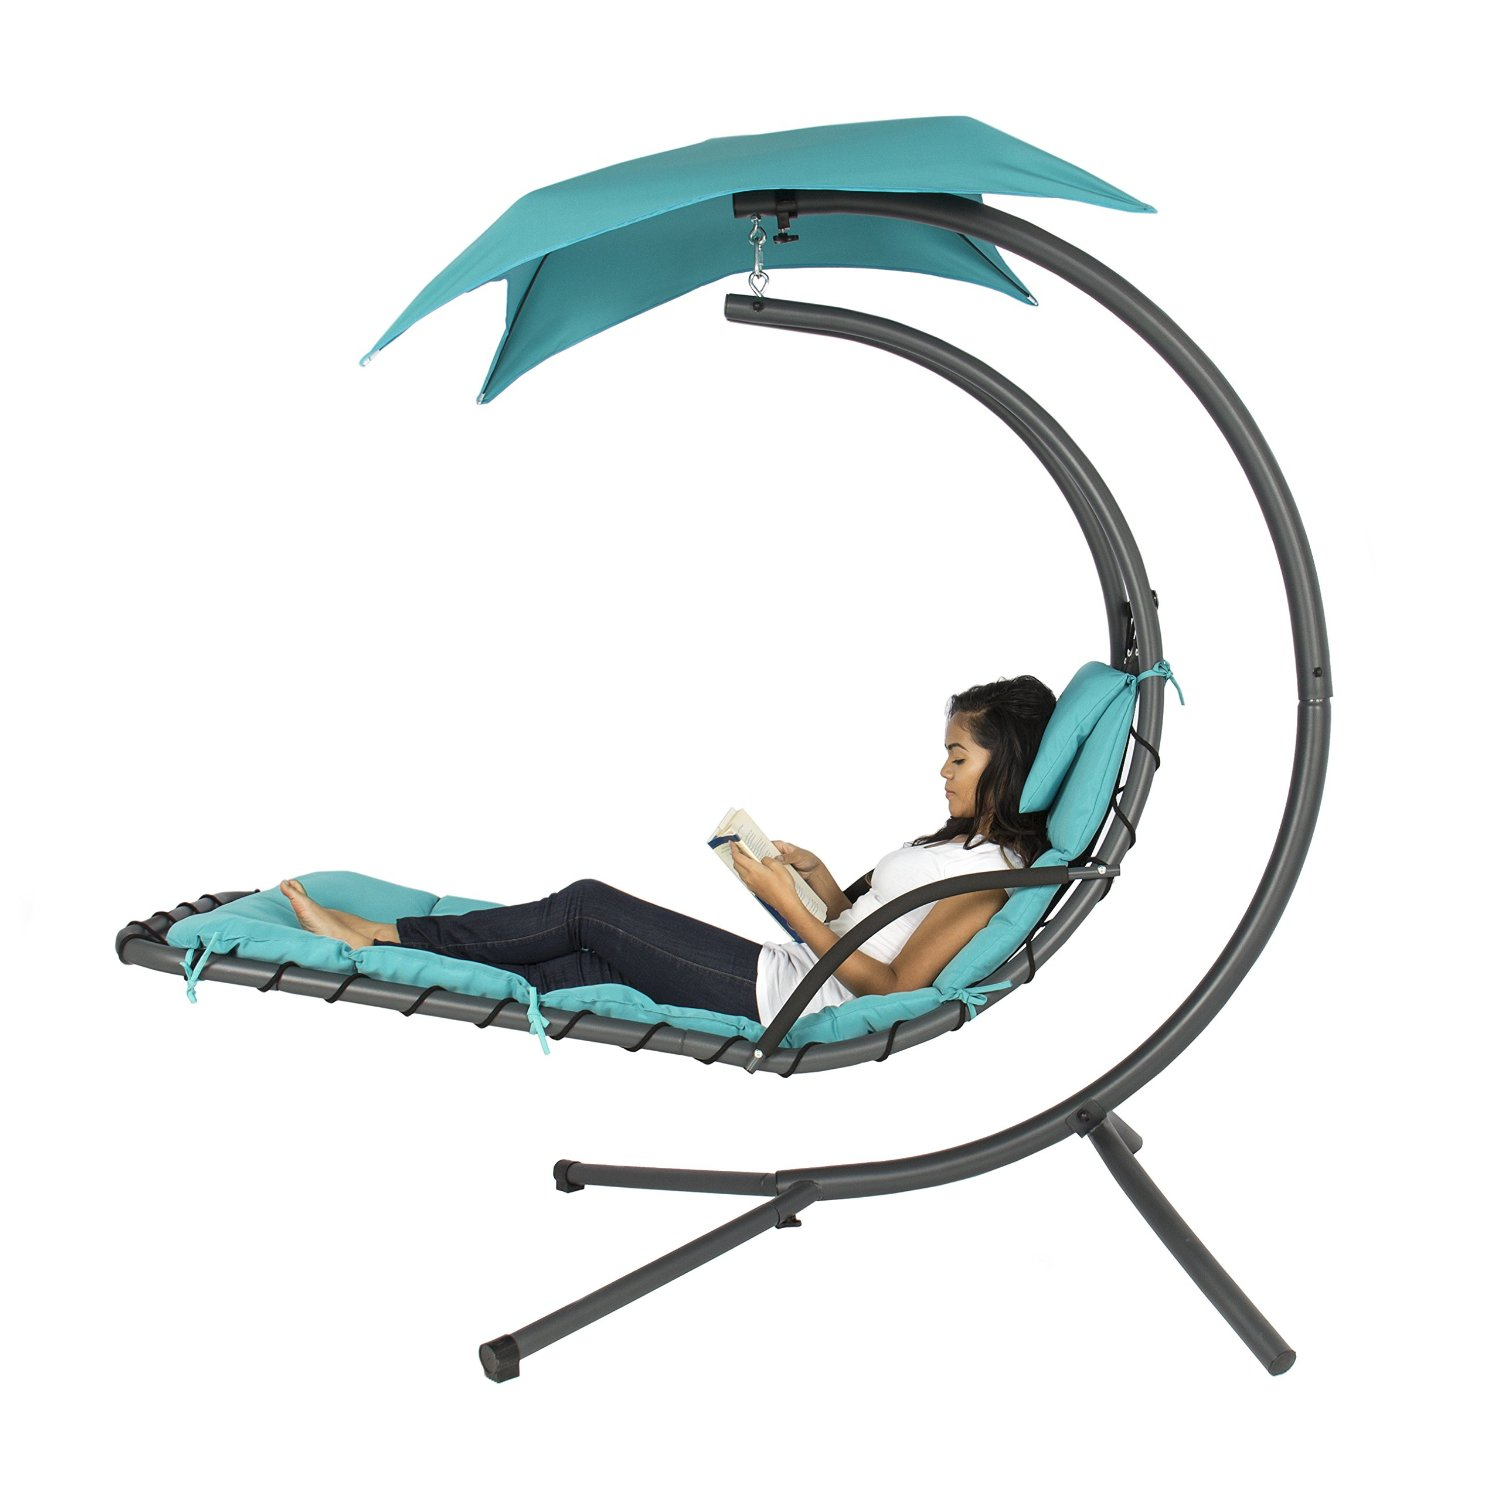 Free Standing Hammock: Forget About Insomnia And Rejuvenate Within Outdoor Canopy Hammock Porch Swings With Stand (View 18 of 25)